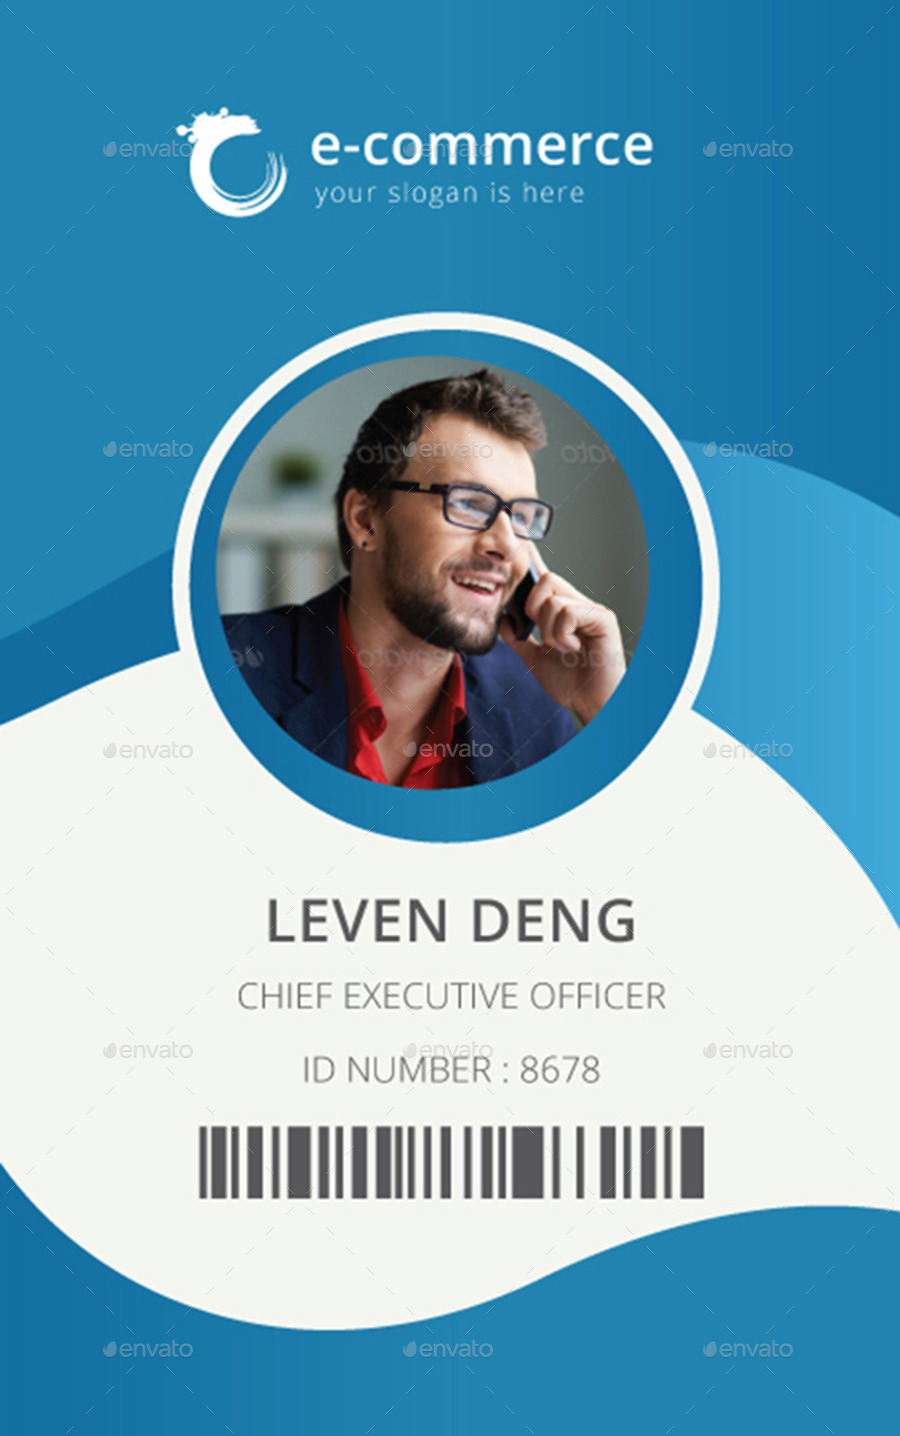 E-Commerce Business Office ID Card by dotnpix | GraphicRiver